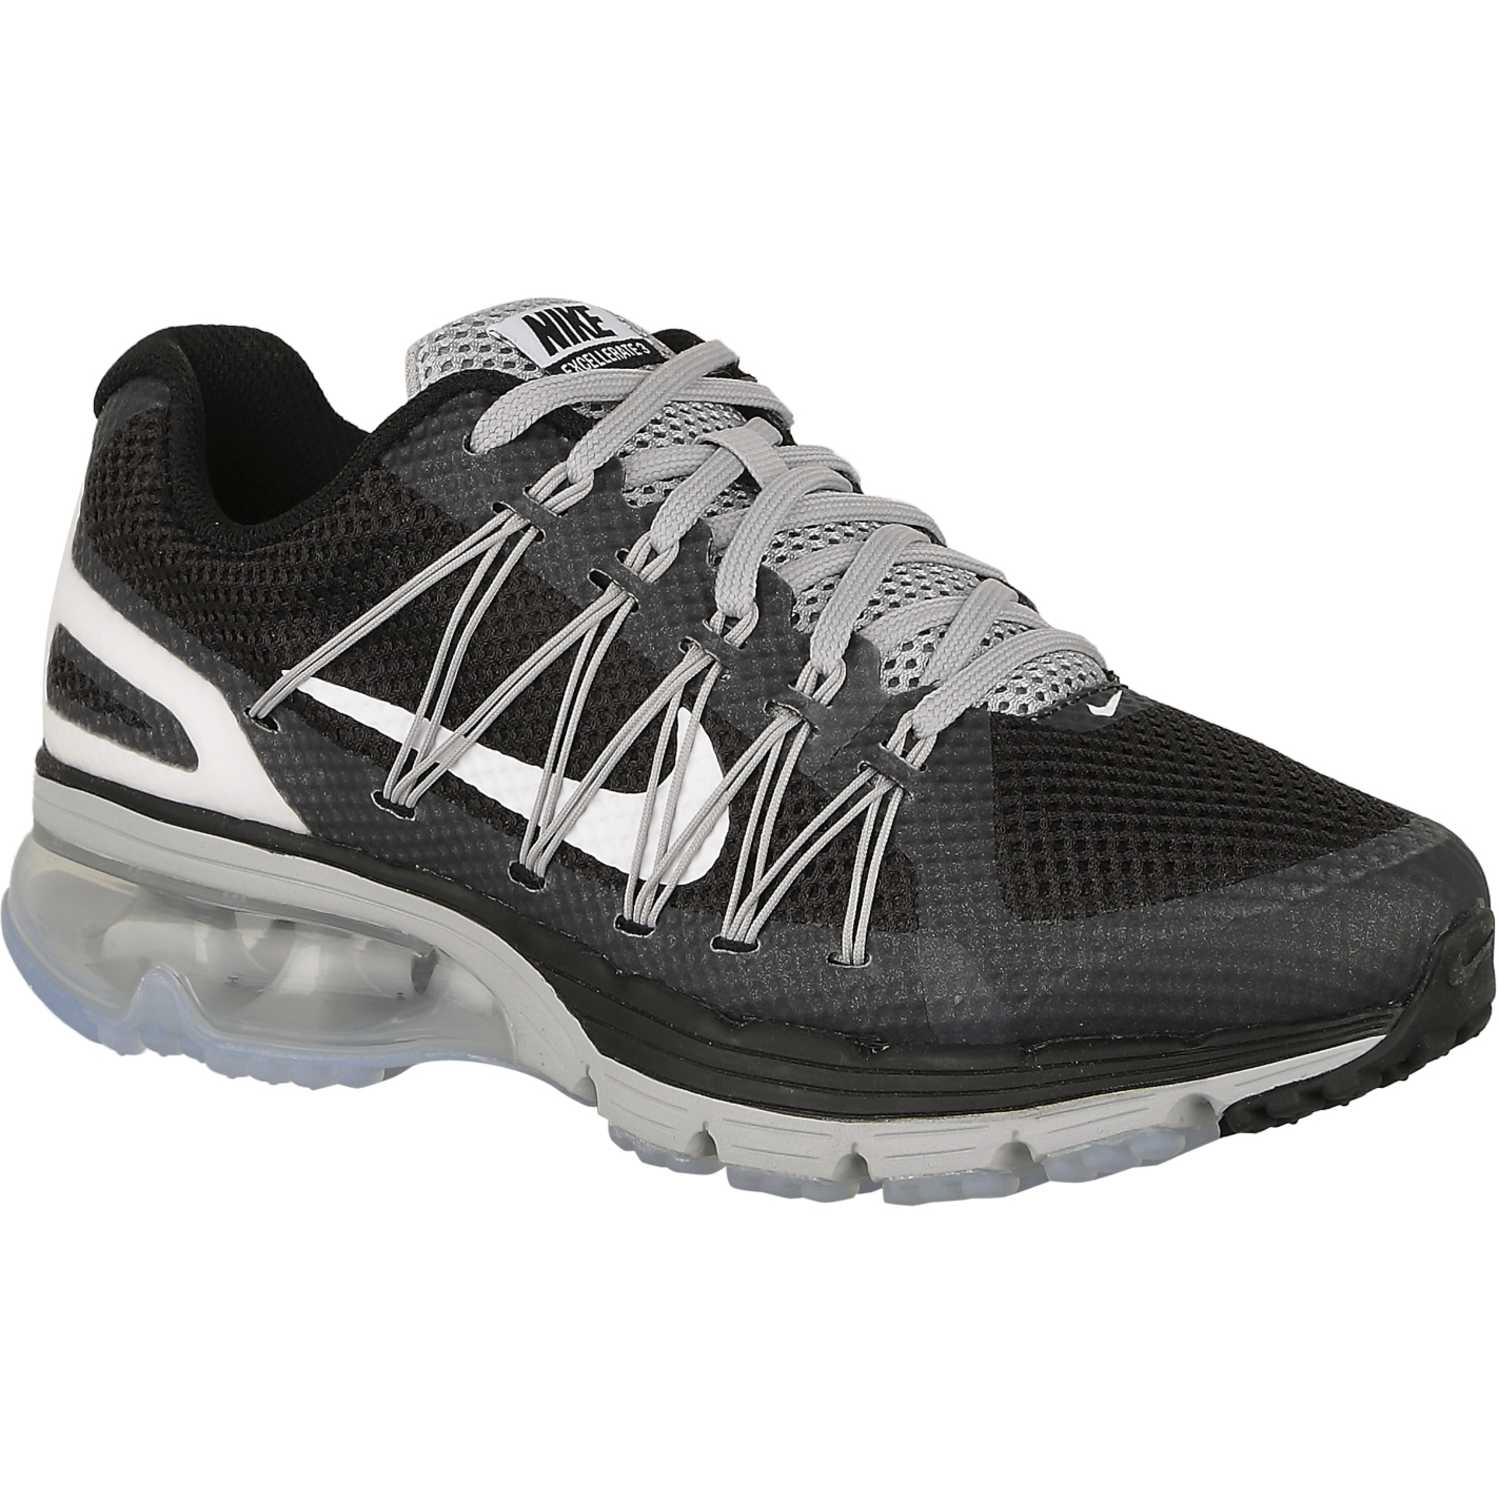 Blanco Max Negro Wmns Casual 3 Excellerate De Mujer Nike Air